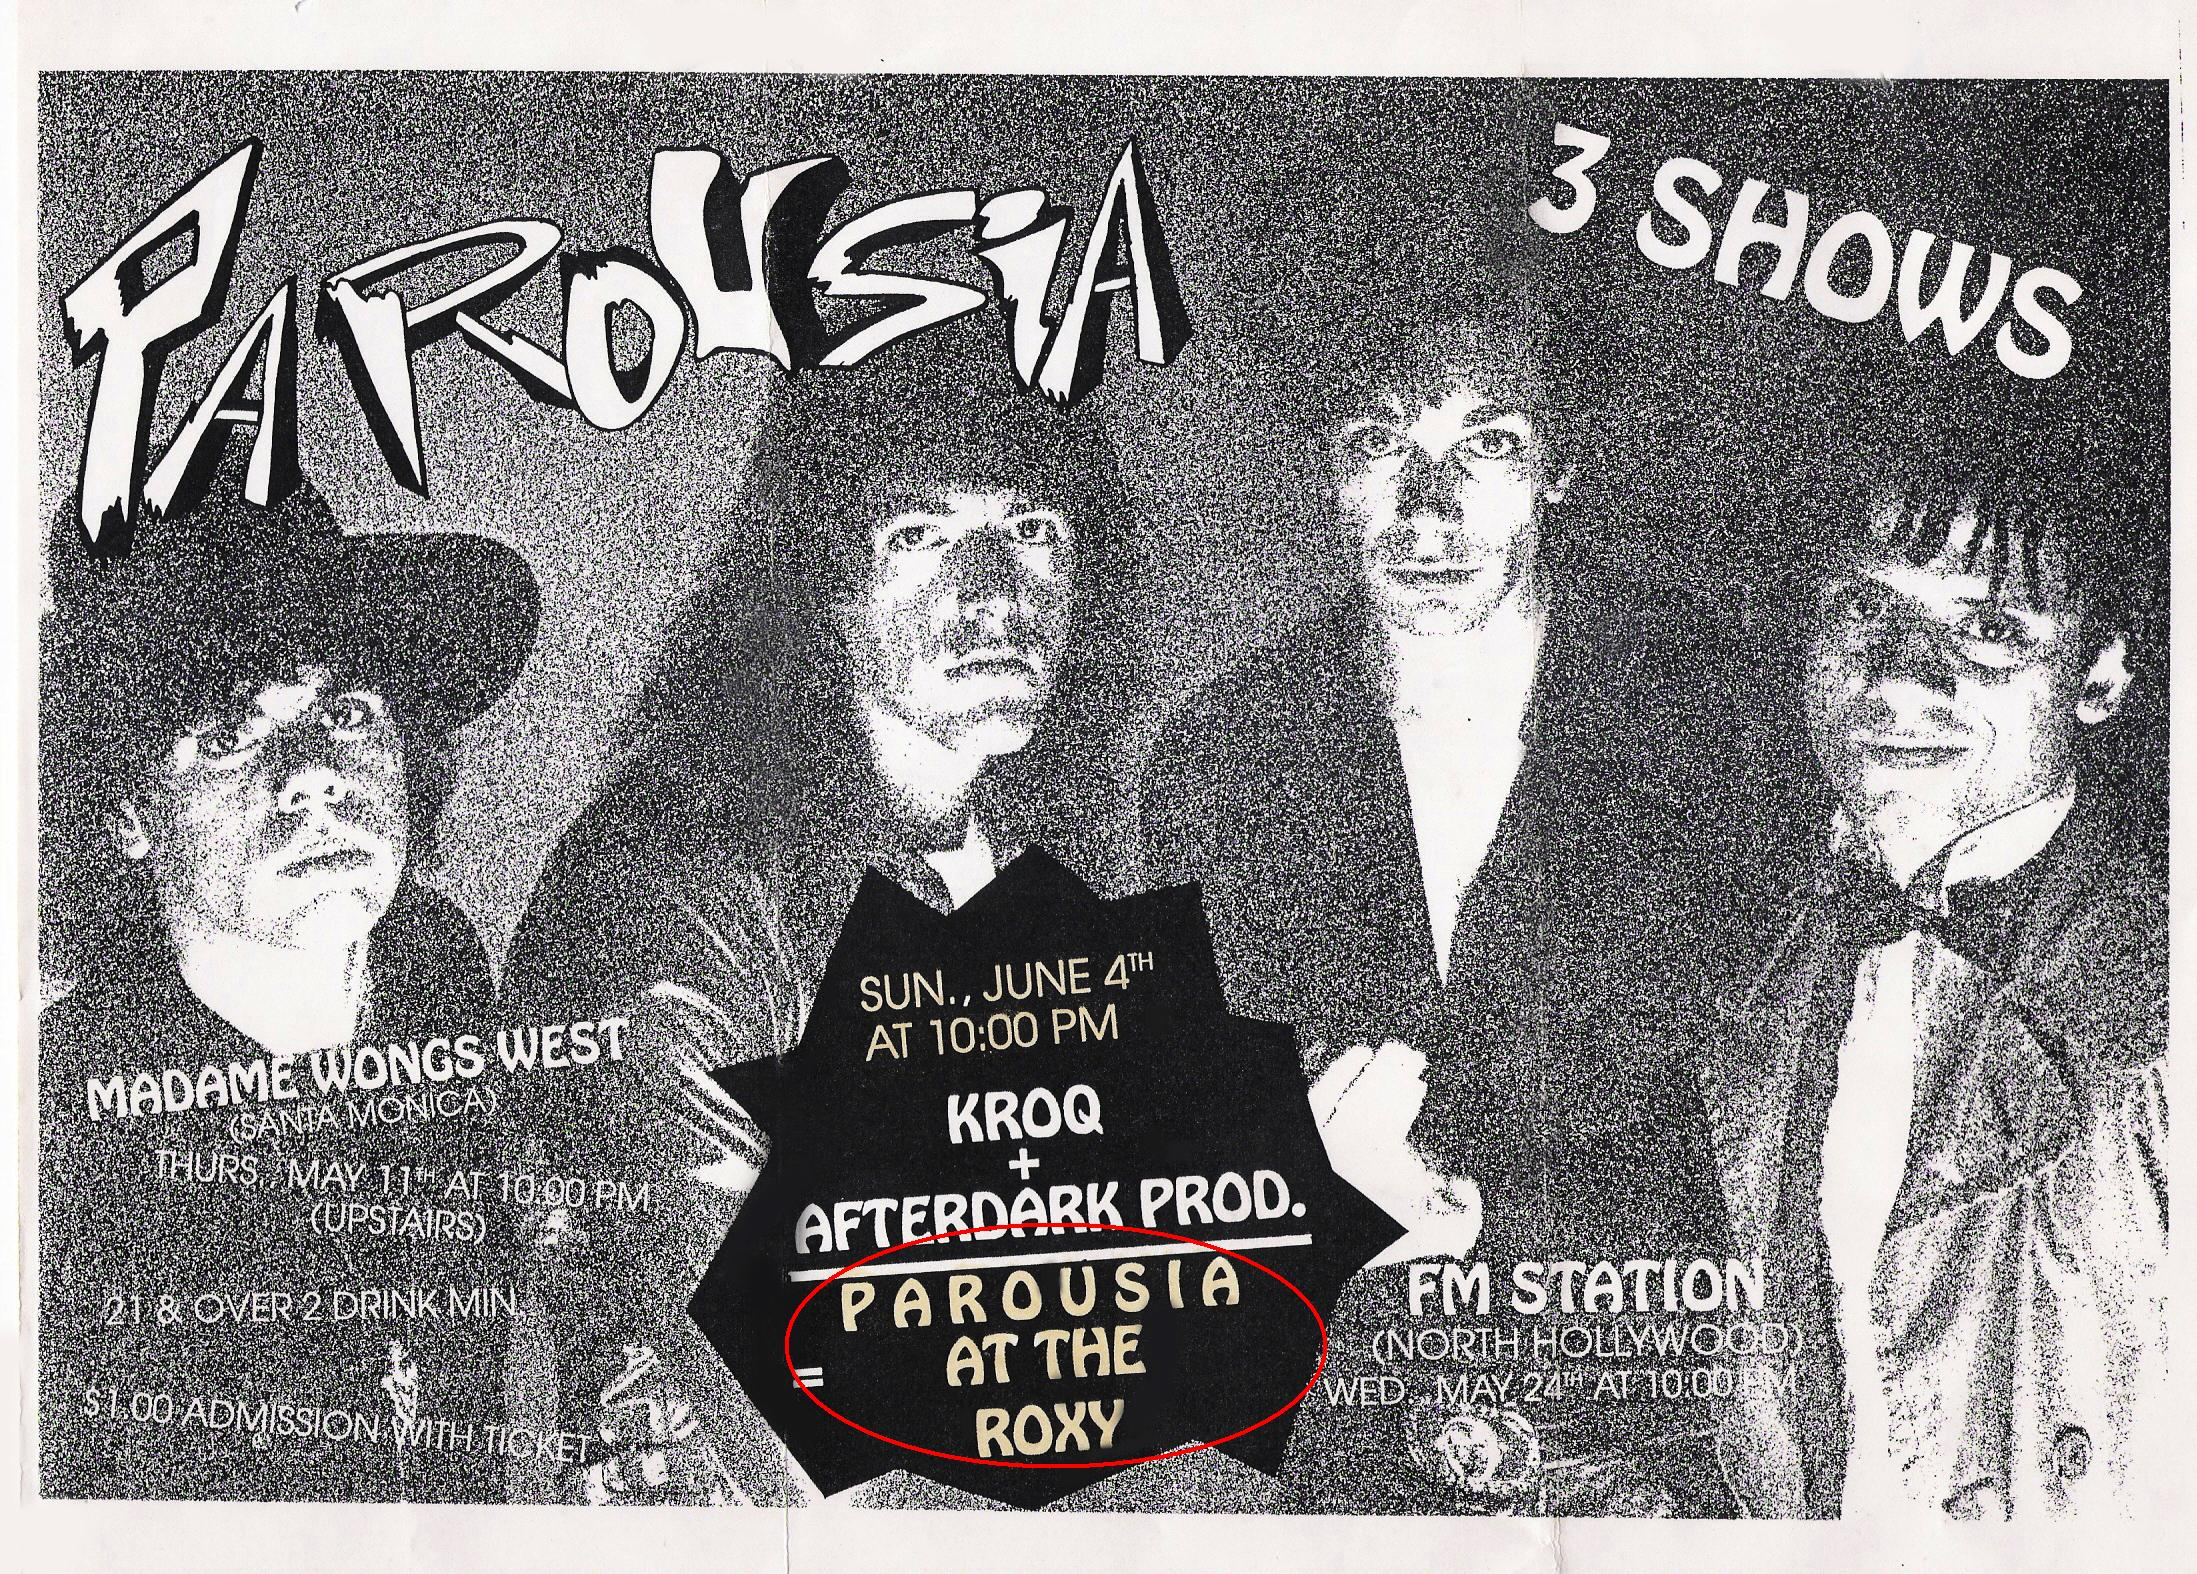 Parousia at the Roxy June 4th, 1989_v3